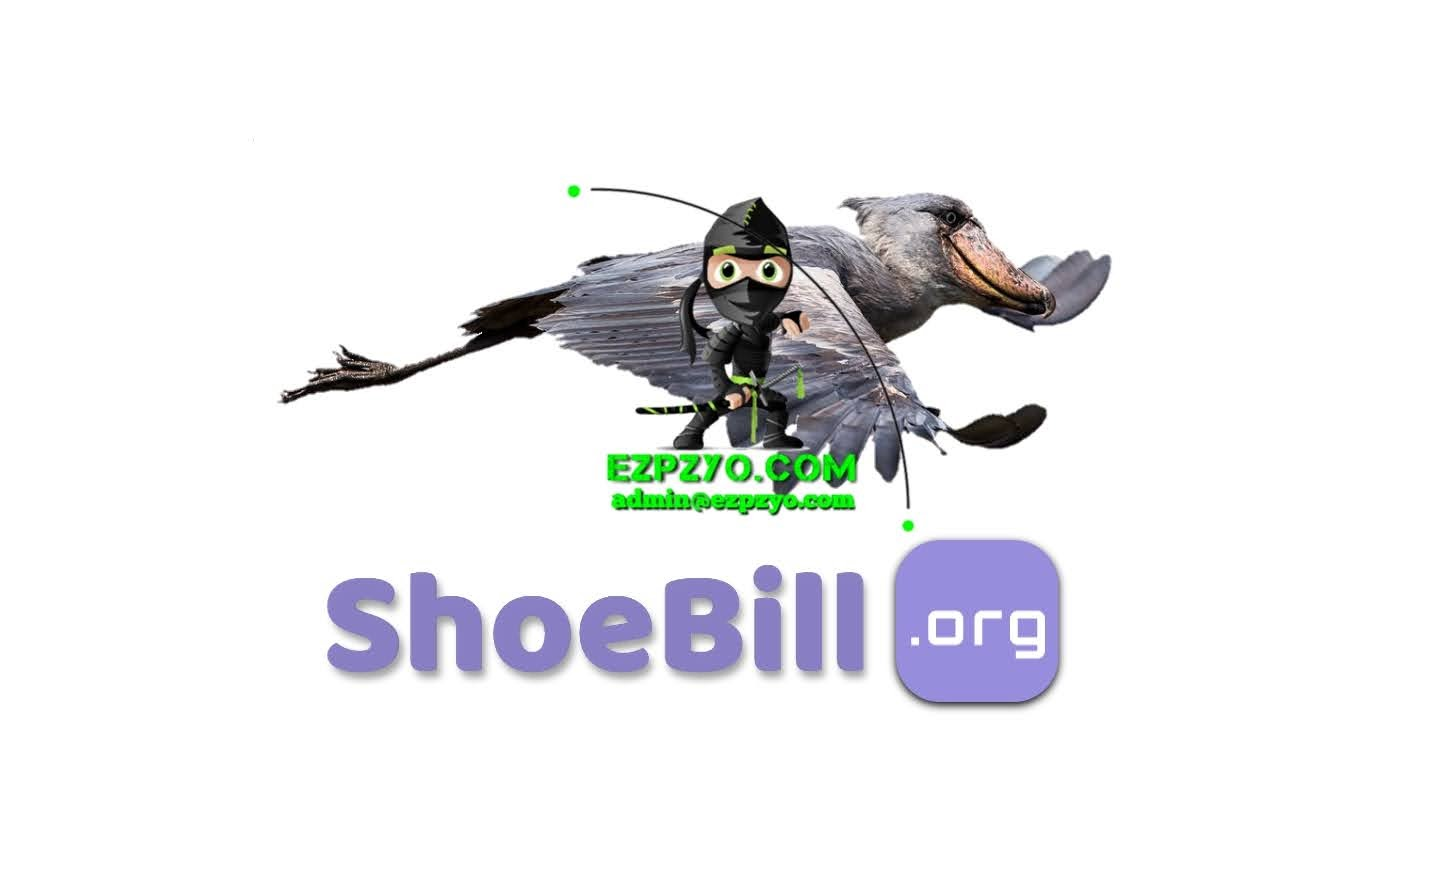 shoebill.org